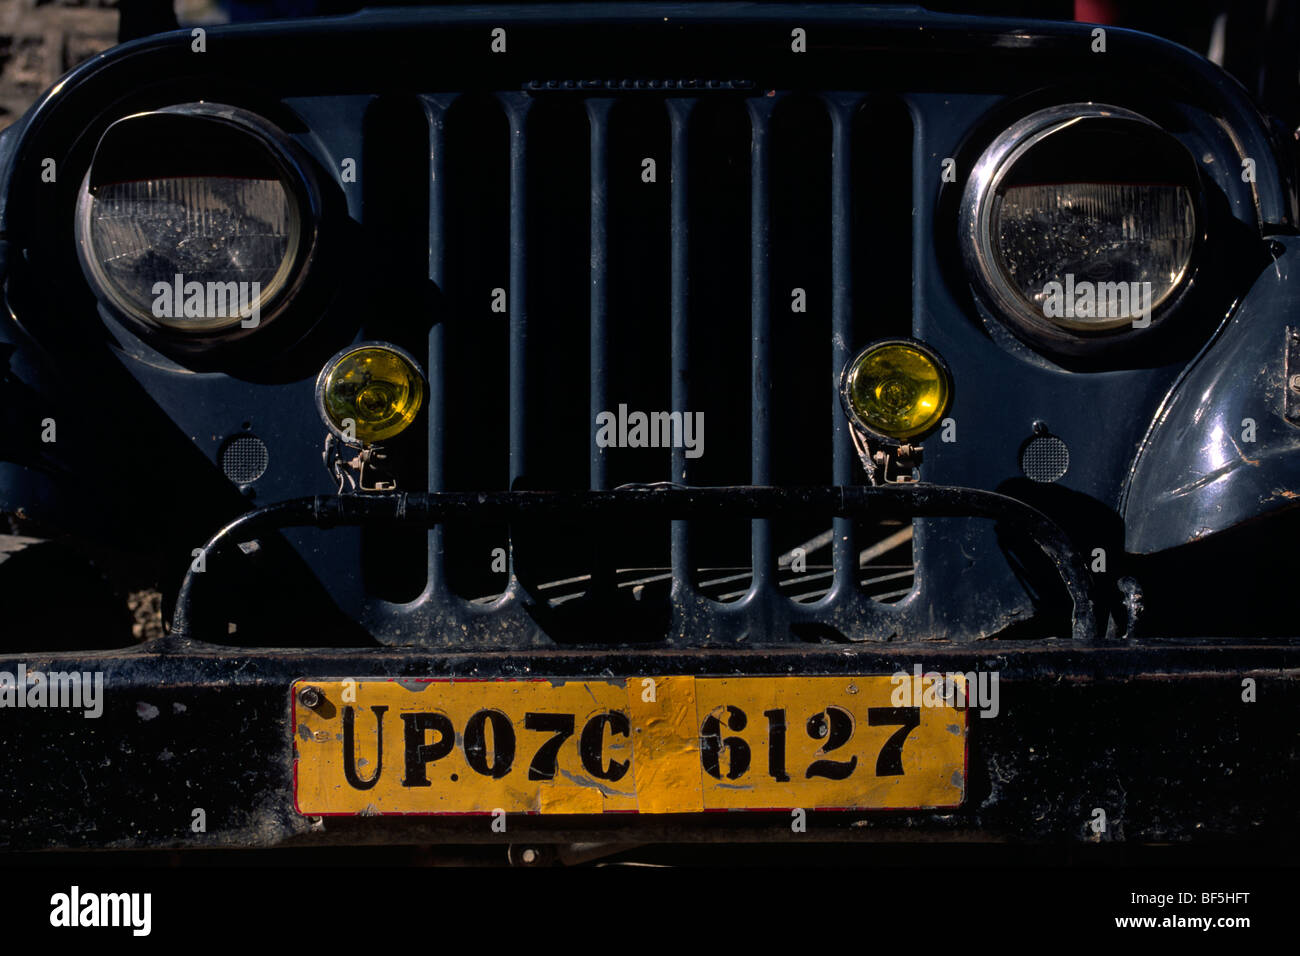 india, uttarakhand, rishikesh, car plate - Stock Image